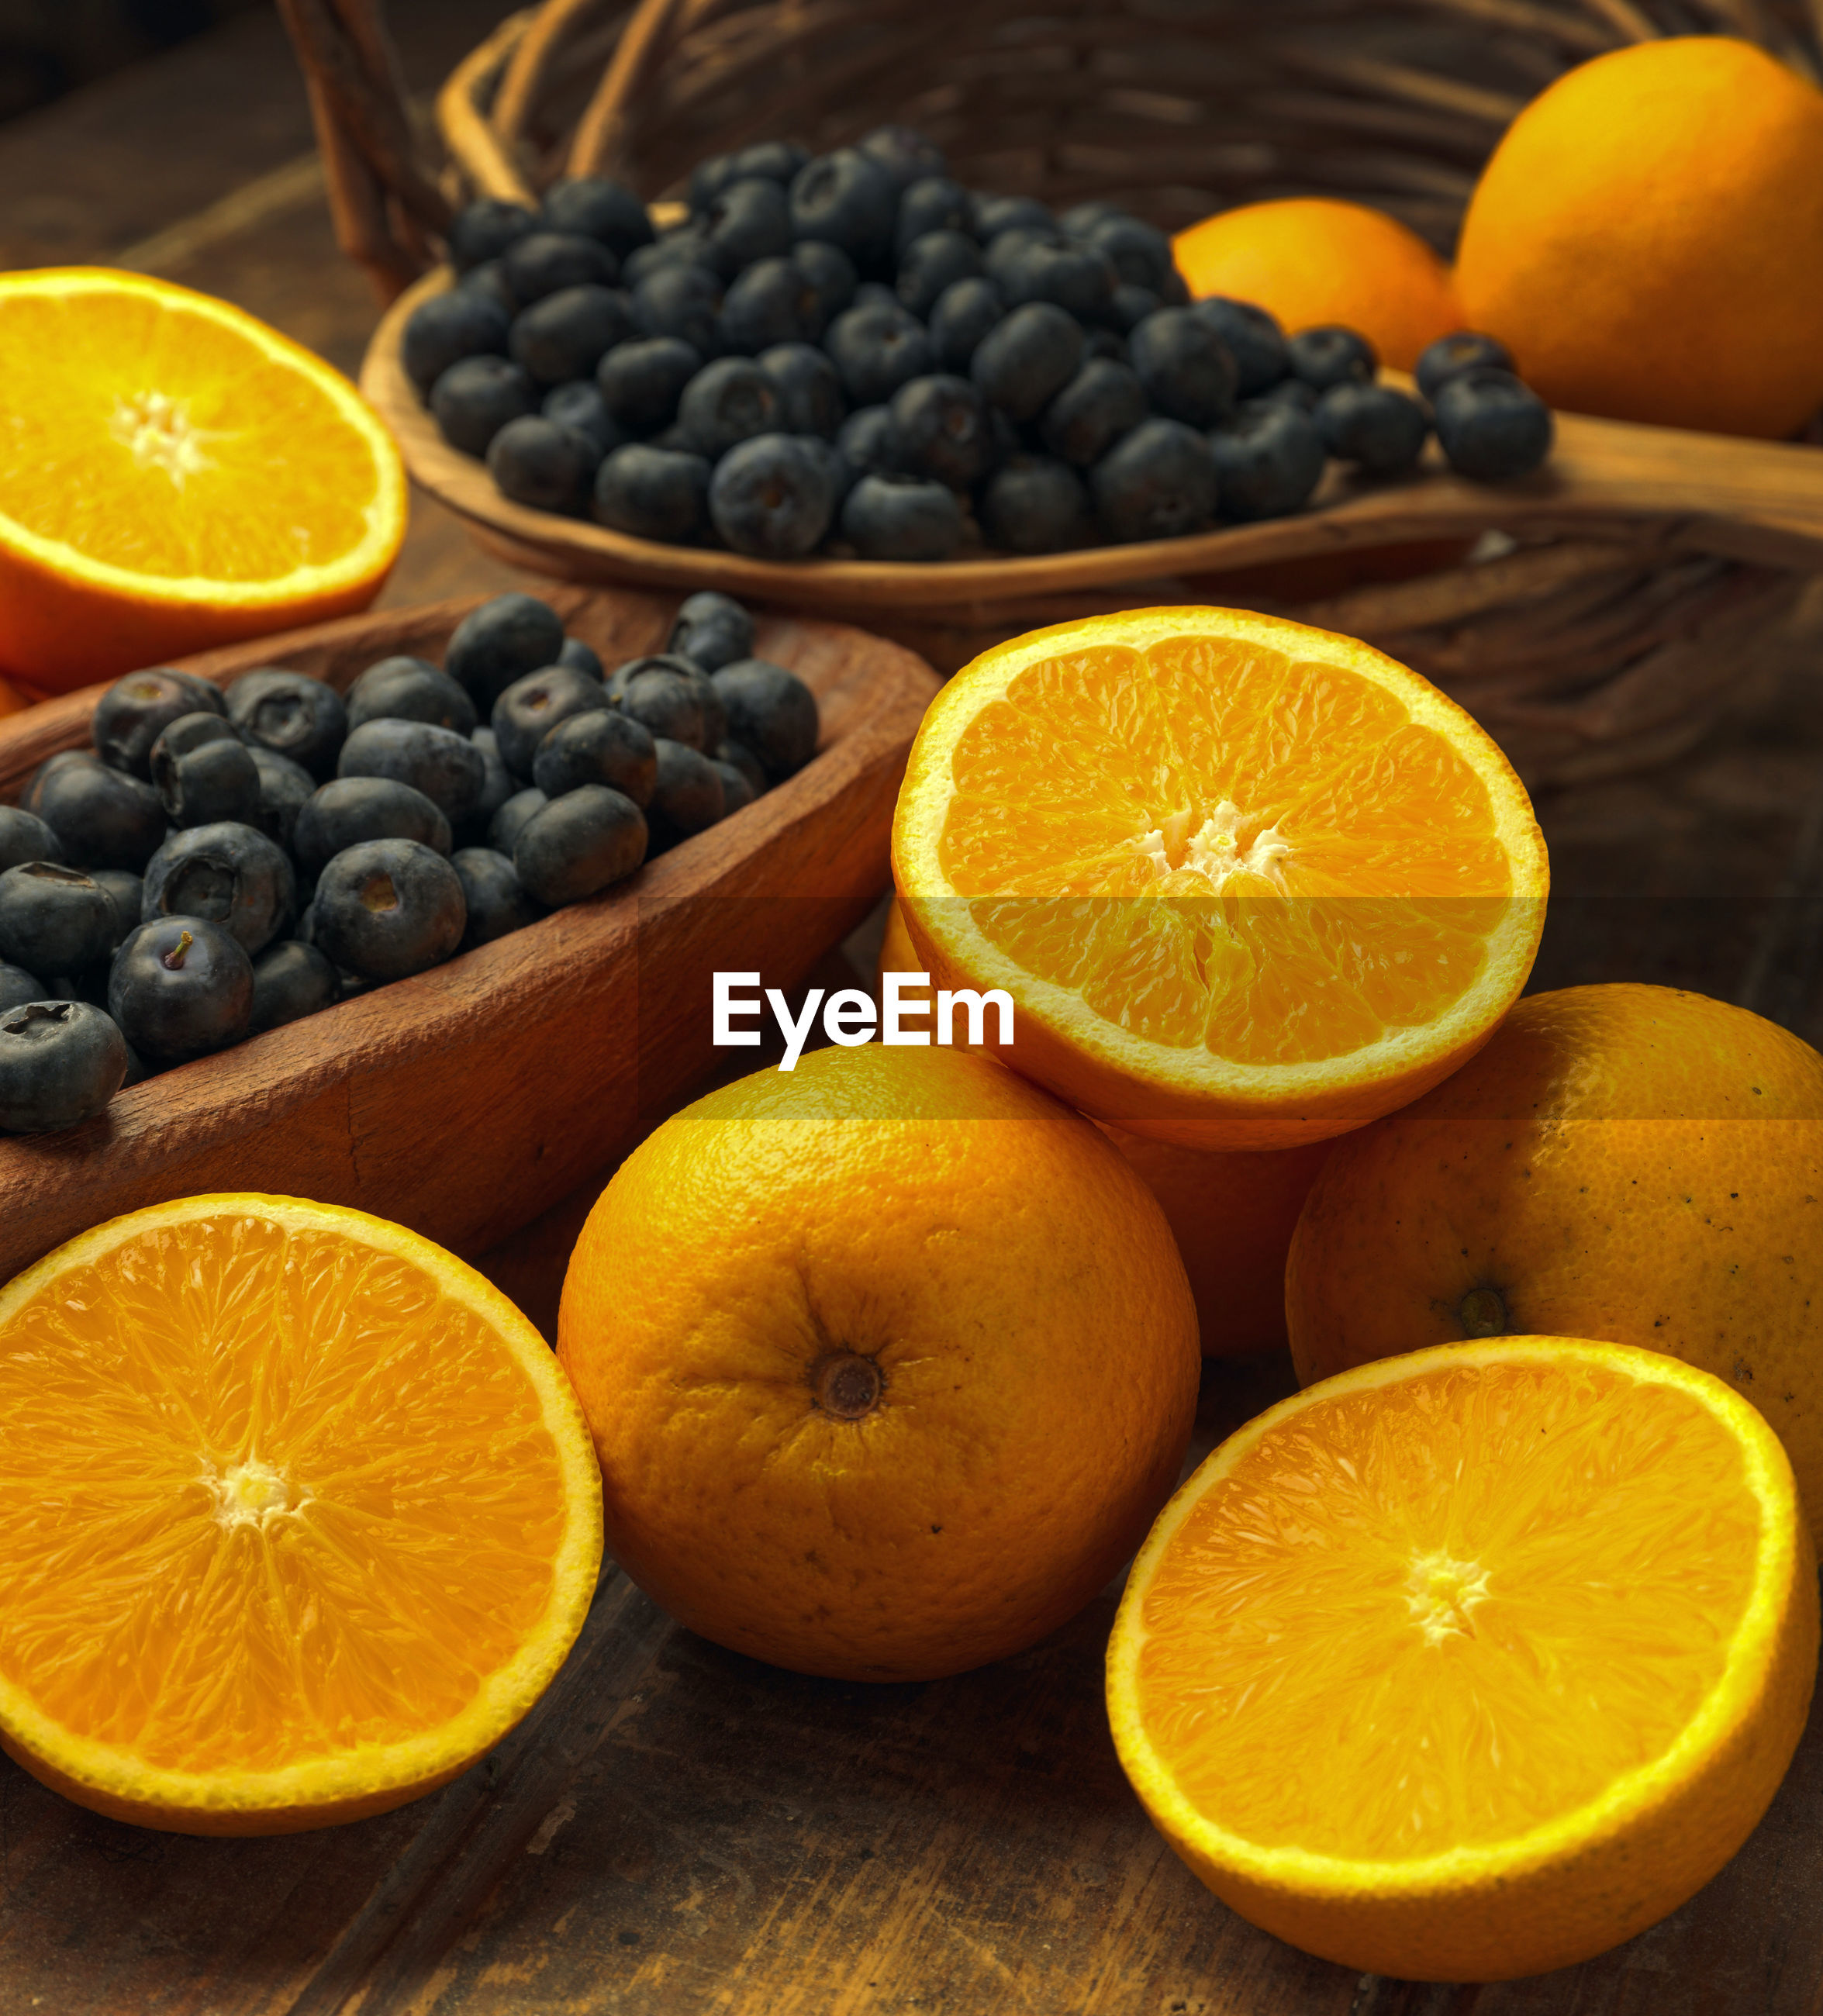 HIGH ANGLE VIEW OF FRUITS IN CONTAINER ON TABLE